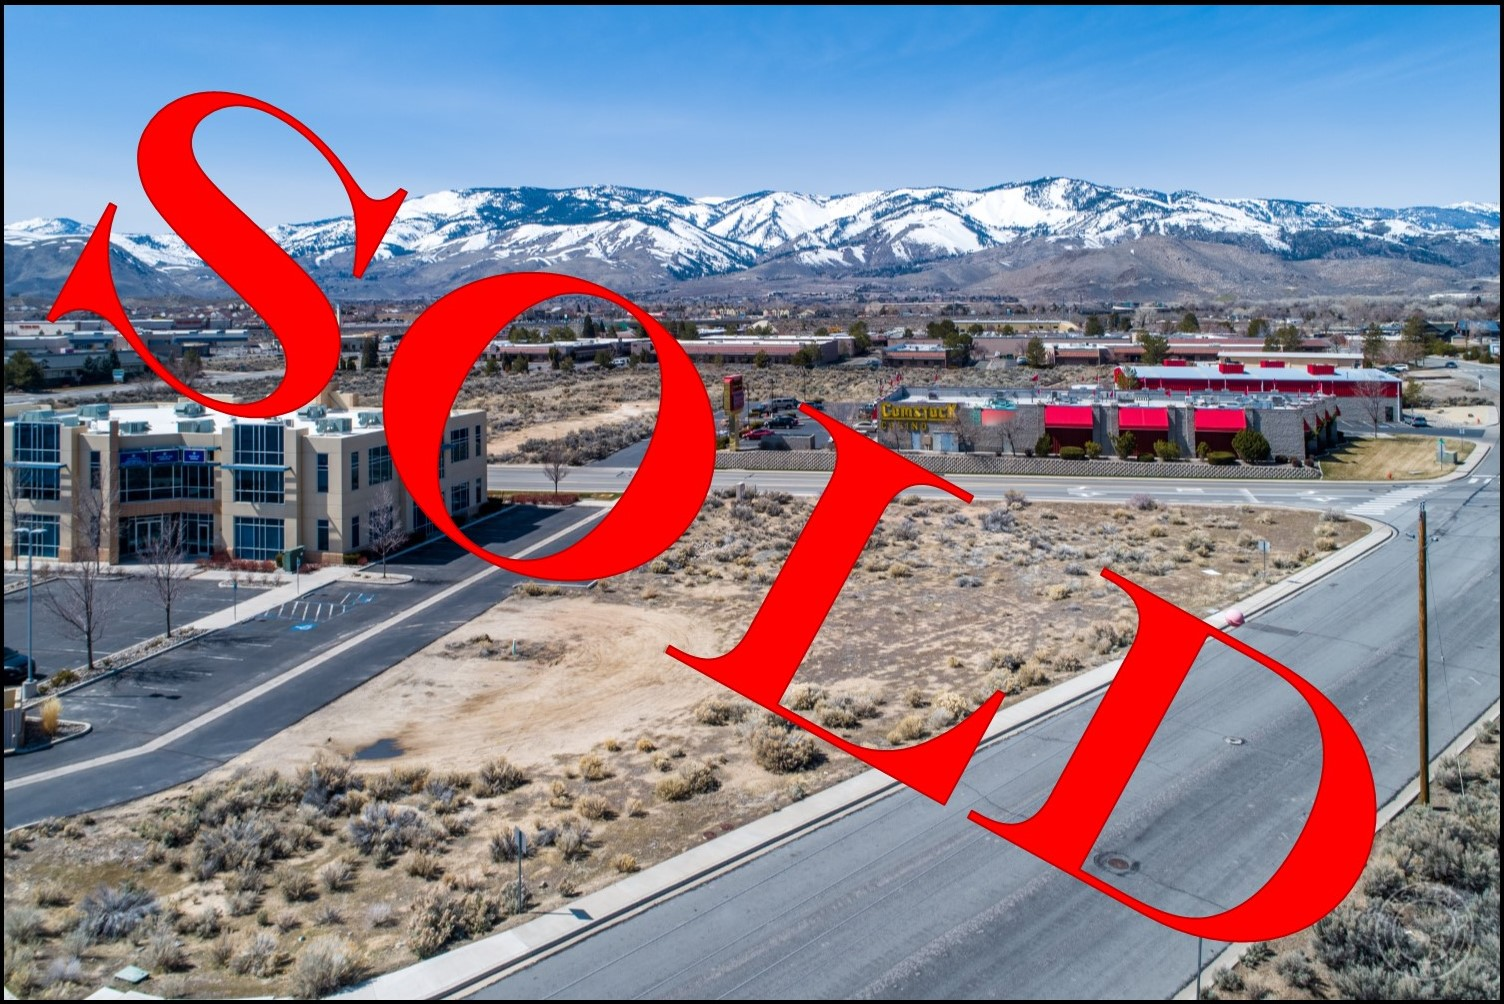 1842 College Parkway - Carson City, NV 89706